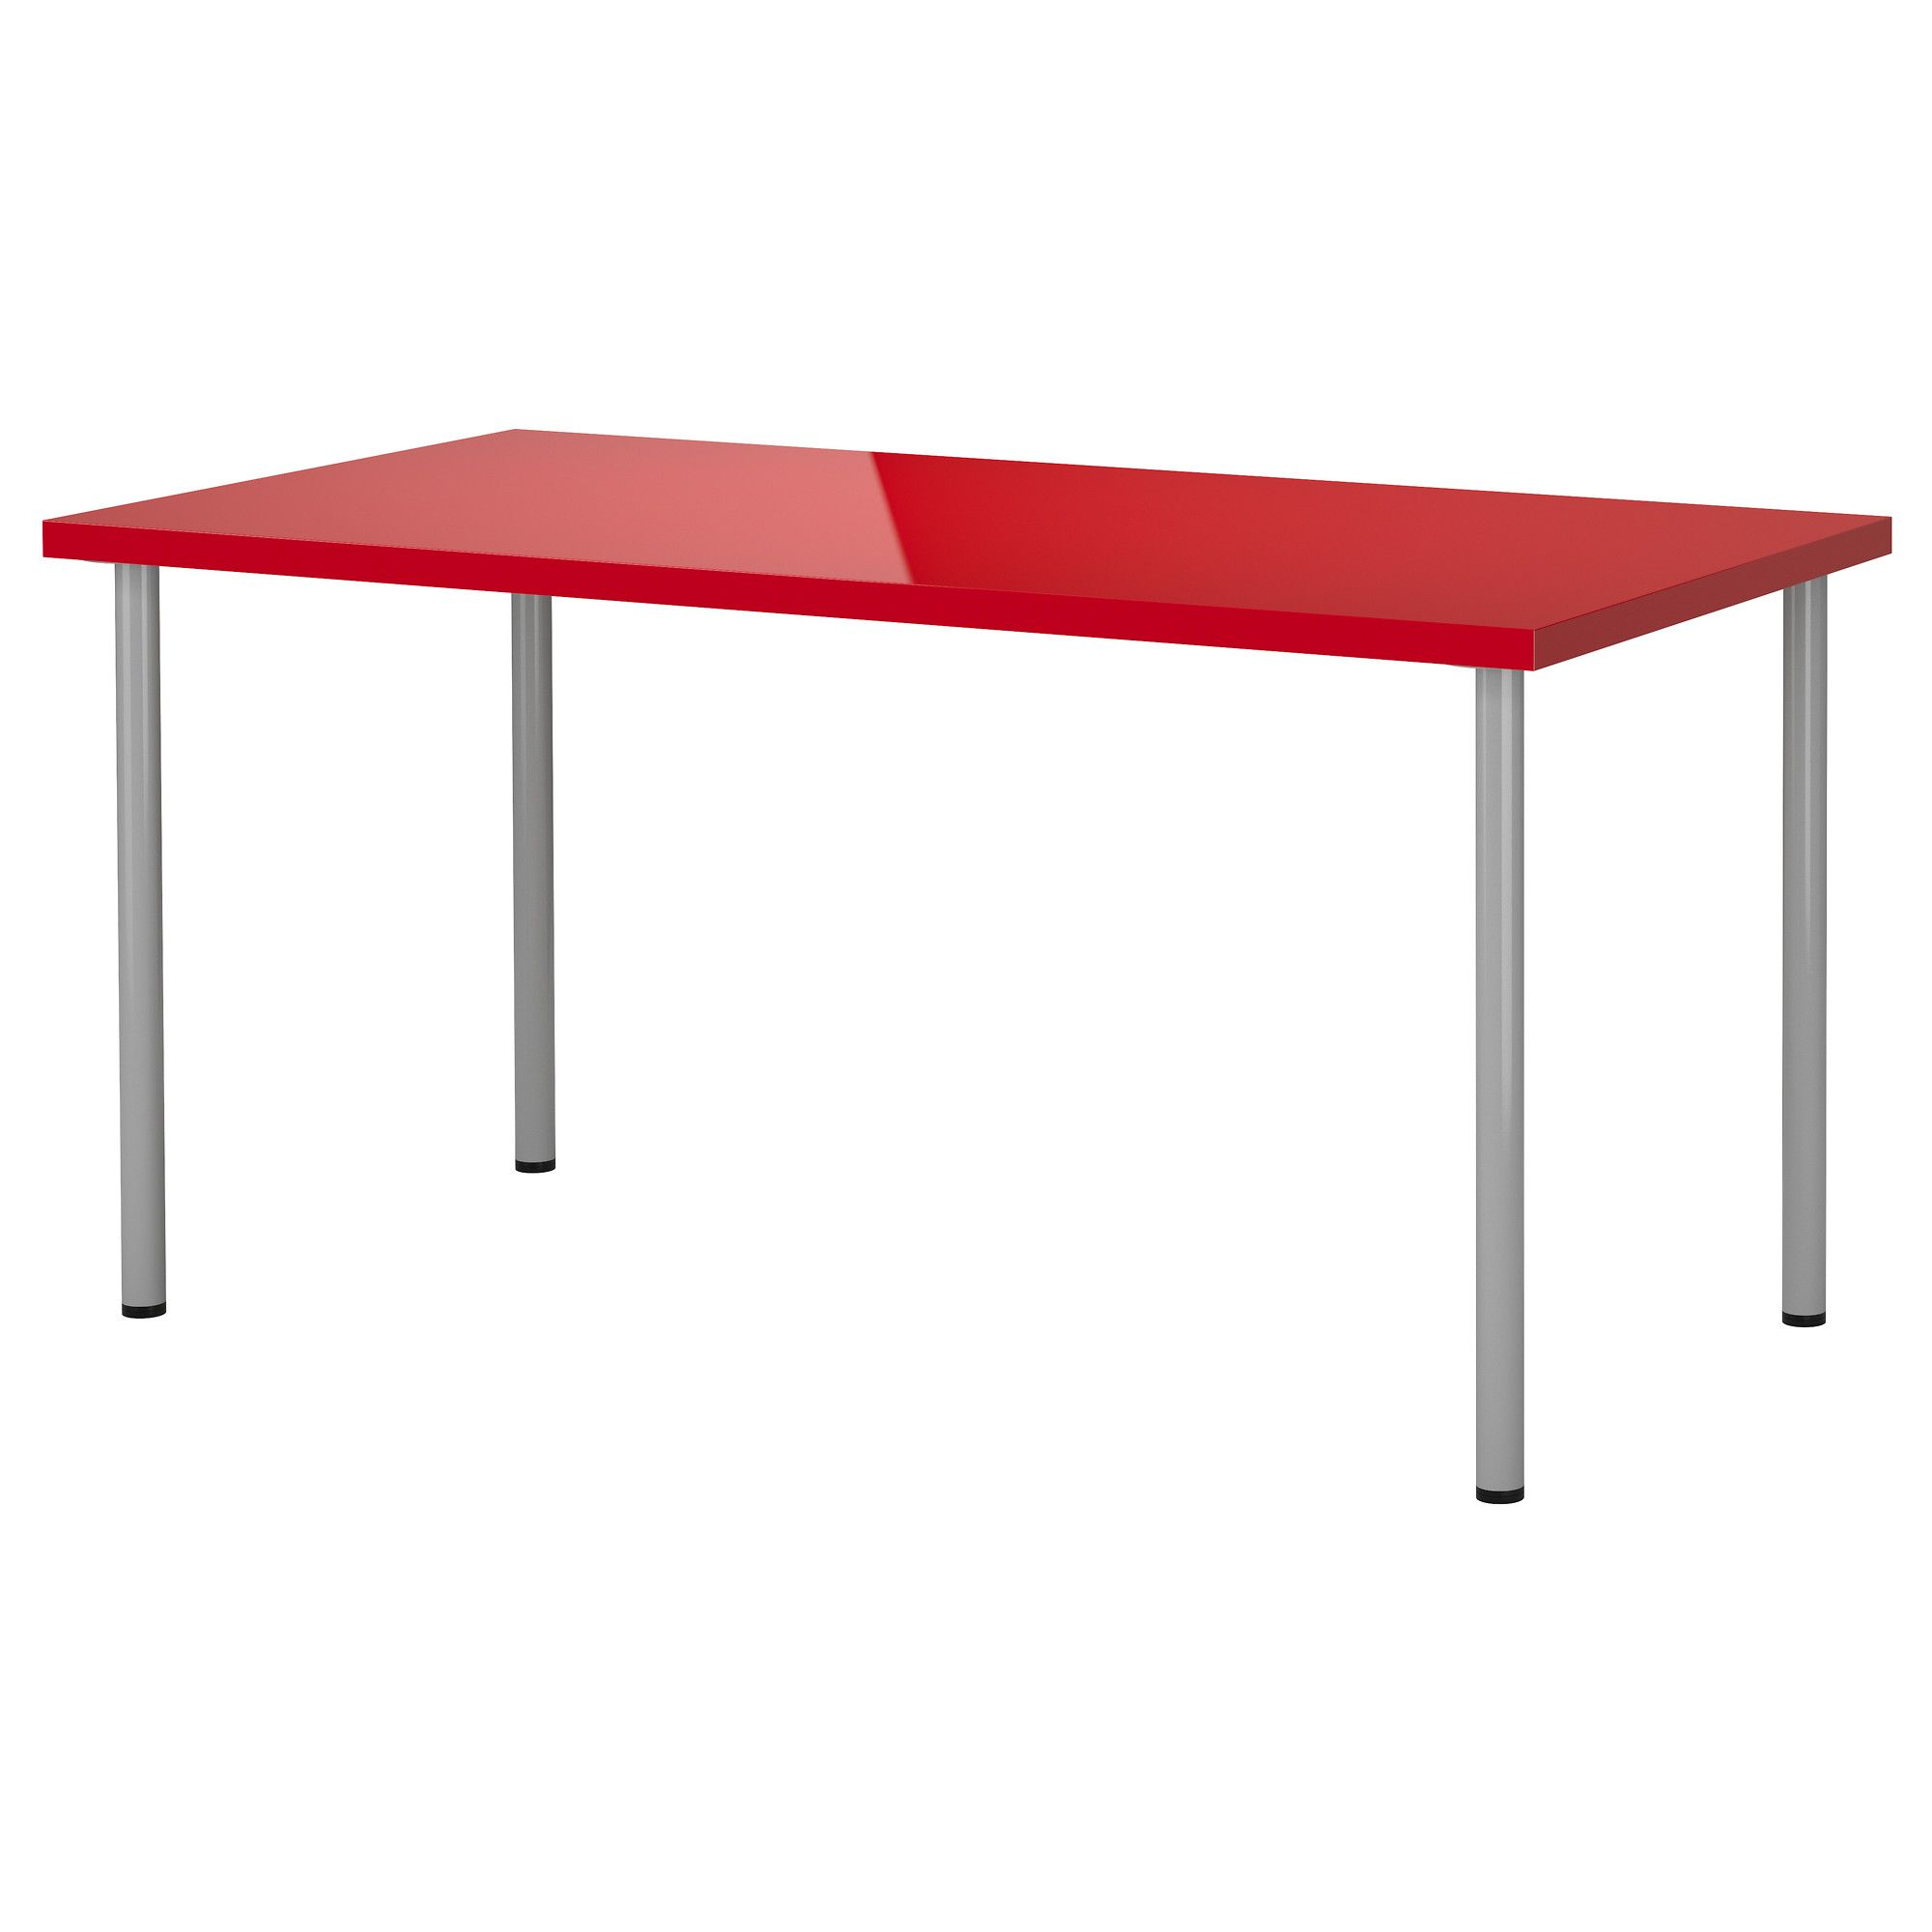 linnmon adils table high gloss red silver color ikea teacher workroom 50 70 depends on size. Black Bedroom Furniture Sets. Home Design Ideas